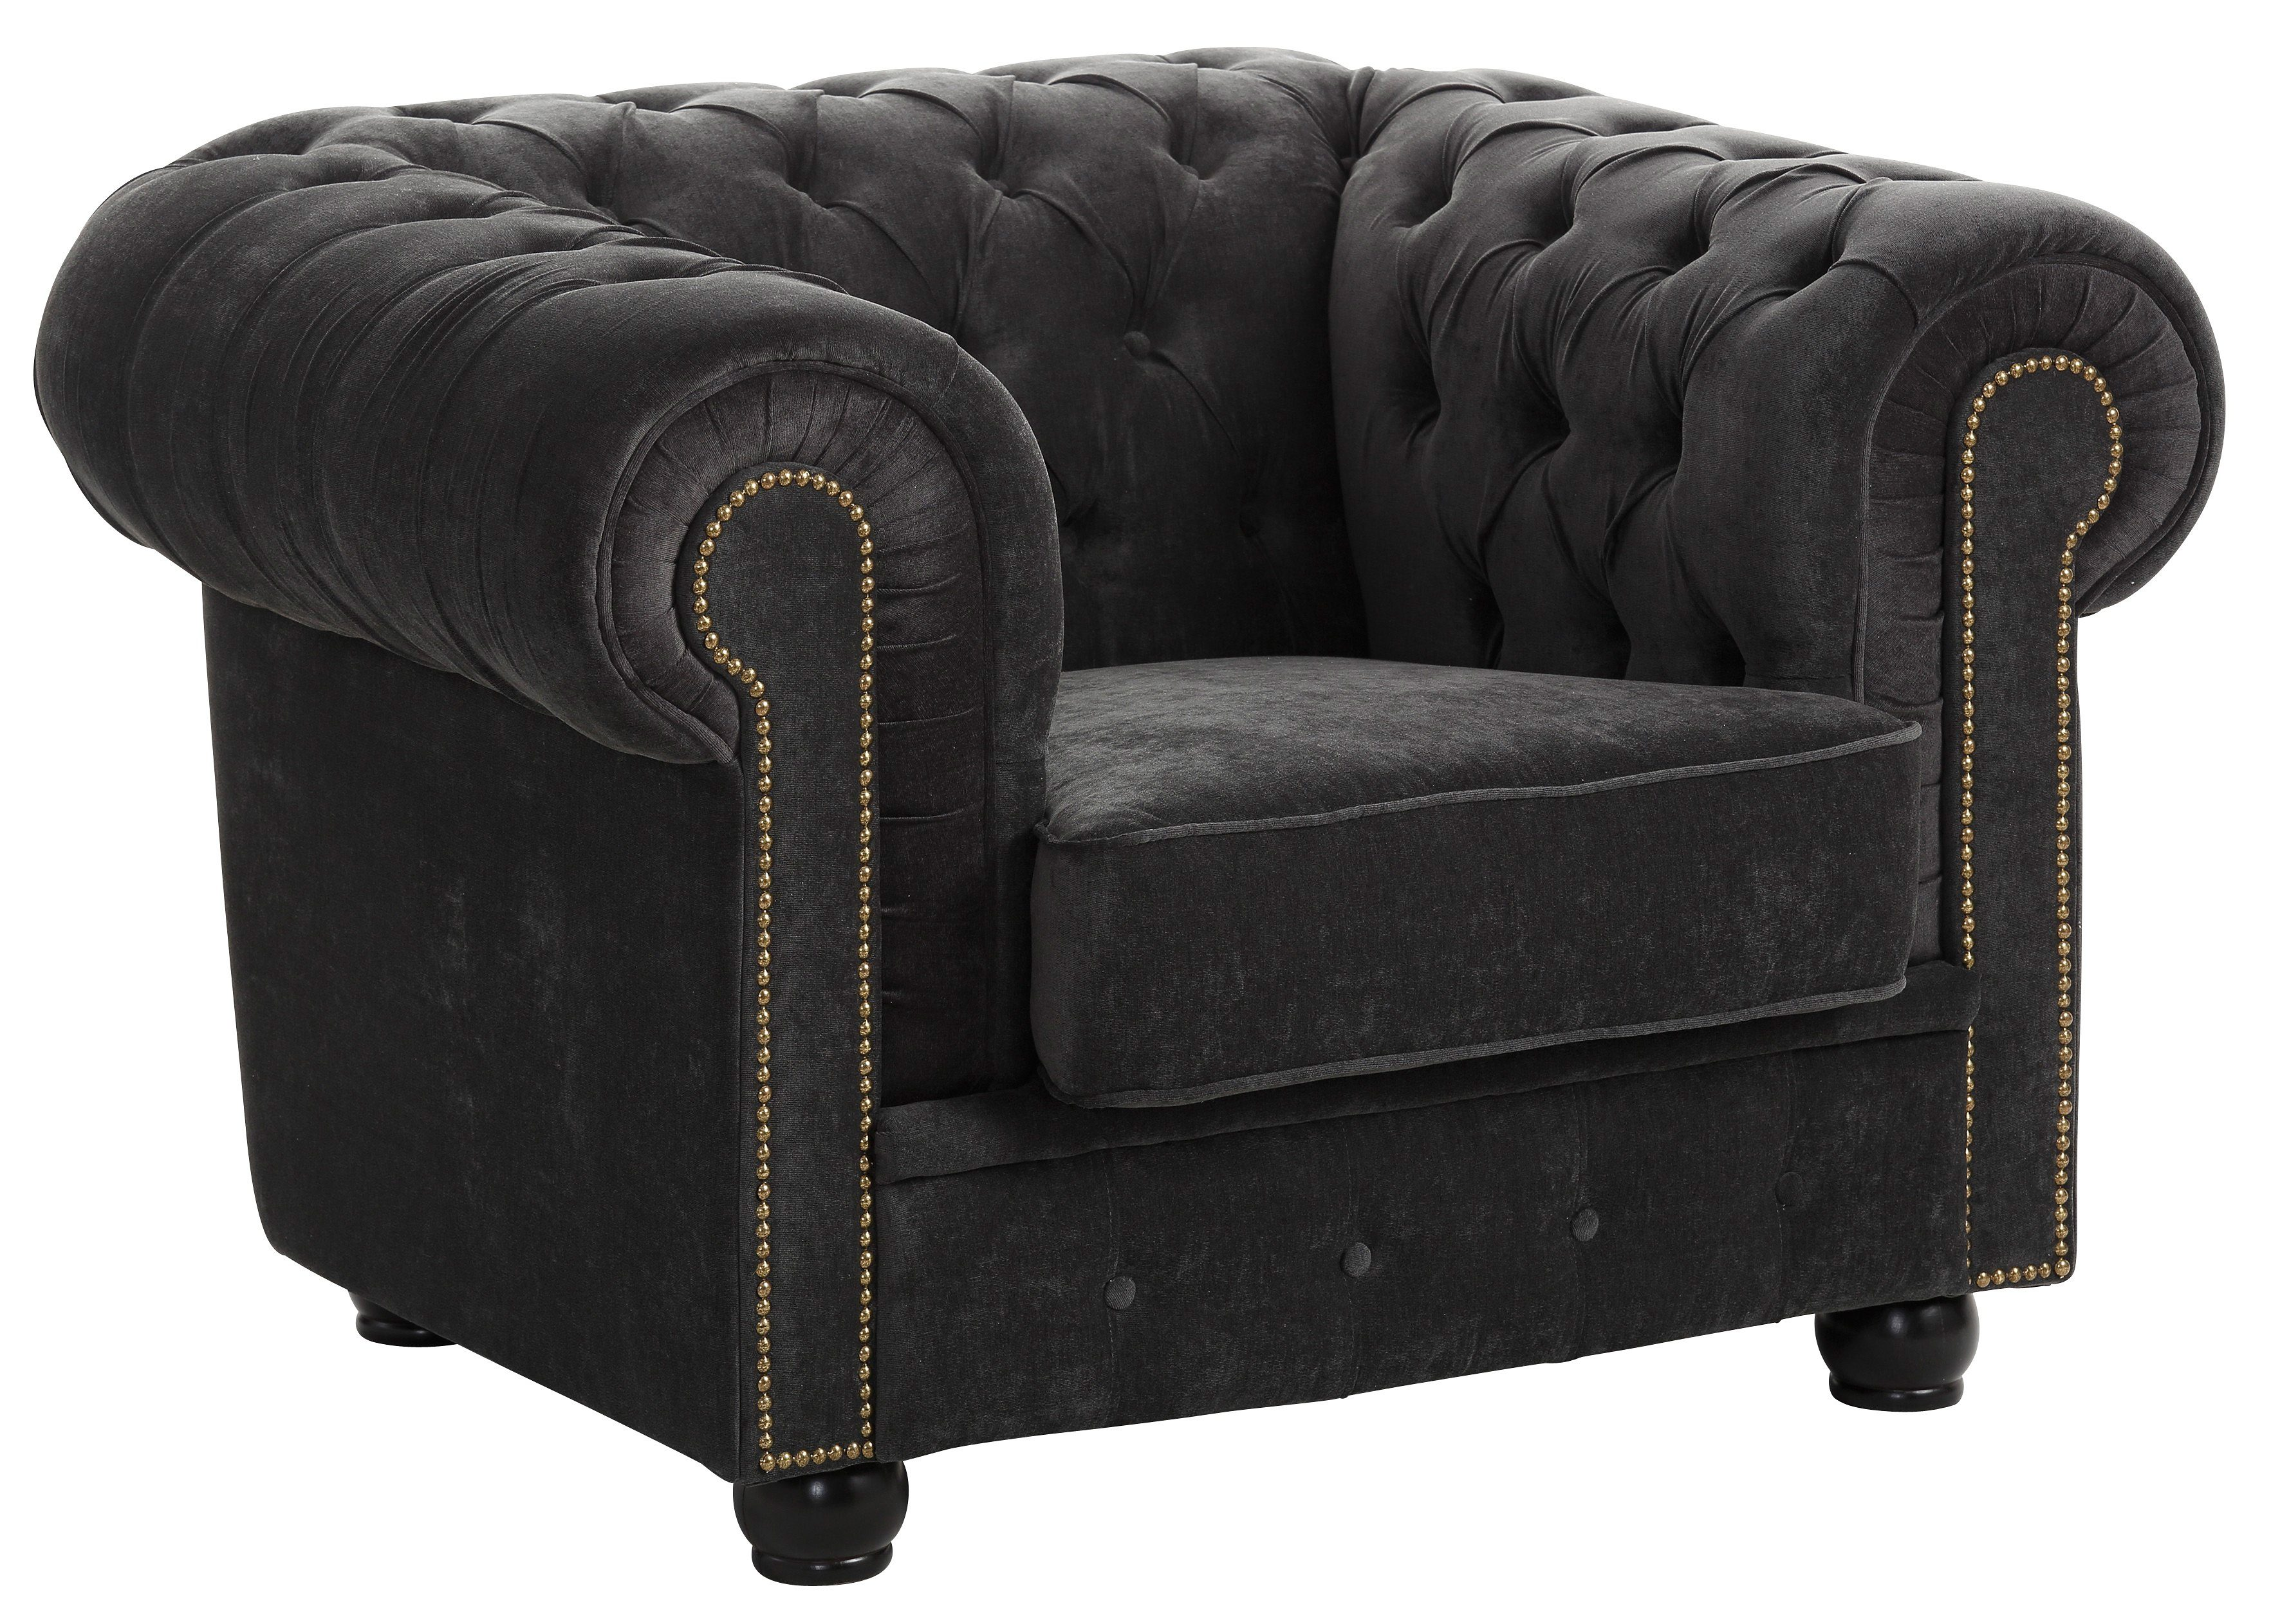 Max Winzer® Chesterfield-Sessel »Rover« | Wohnzimmer > Sessel > Chesterfield Sessel | MAX WINZER